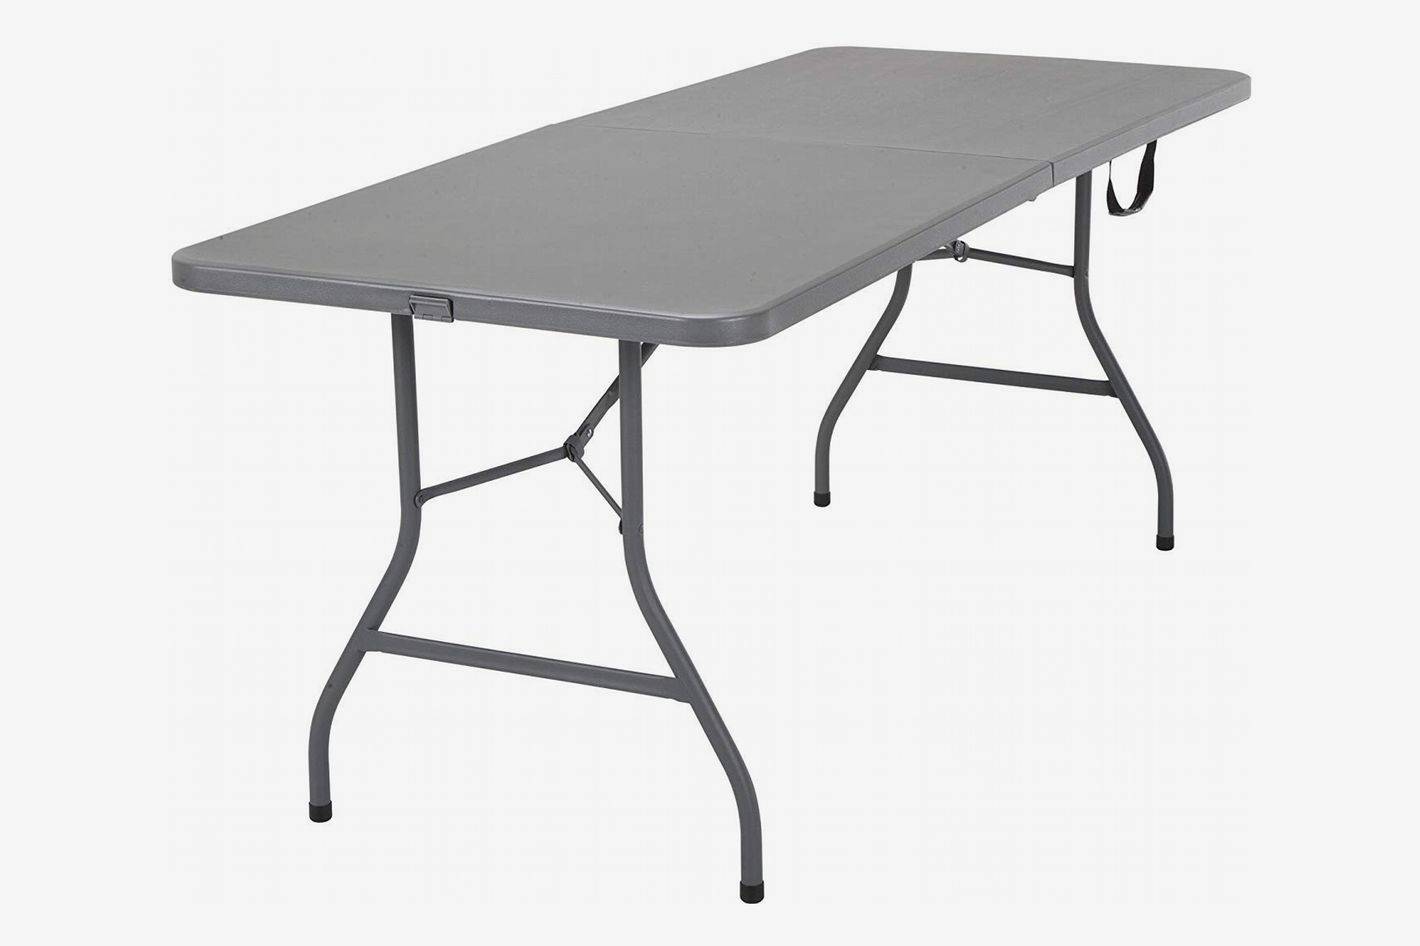 Best Portable Folding Table. COSCO Signature Centerfold Table